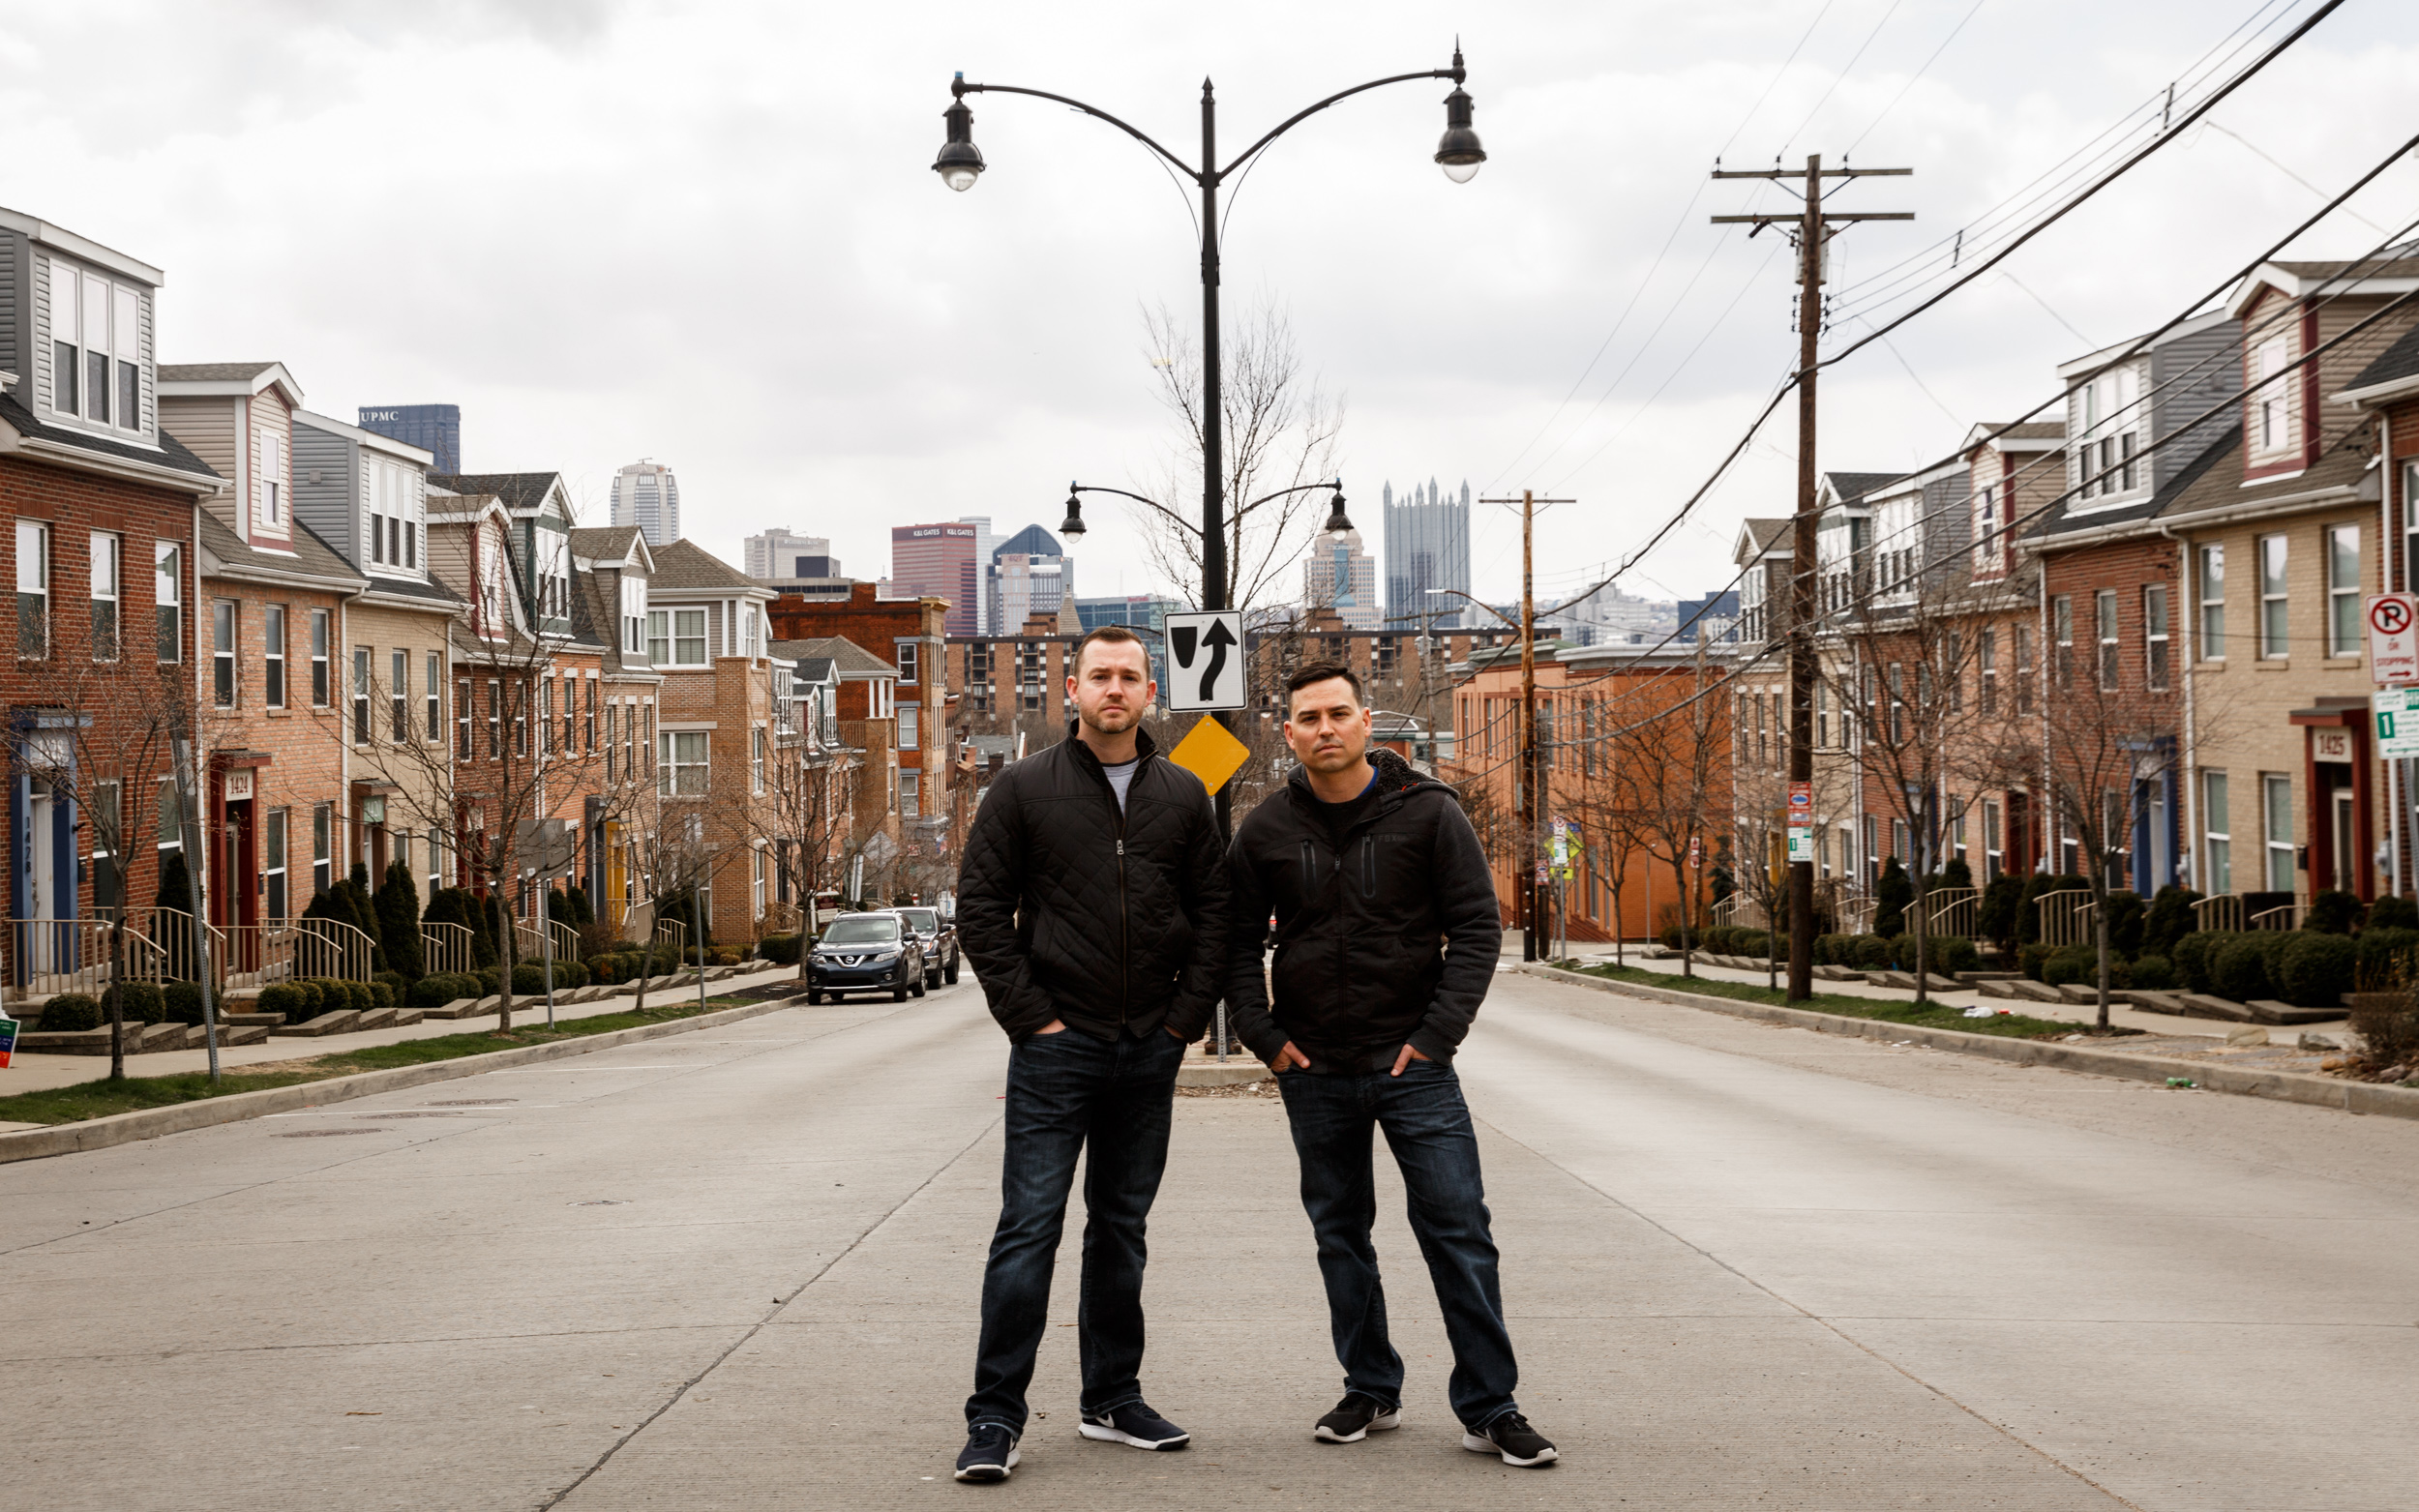 Husbands Jeff Brizek (left) and Craig Reinhard on the street in front of their home on Federal Street. They moved to the North Side because of its prime location. (Photo by Maranie Rae Staab/PublicSource)